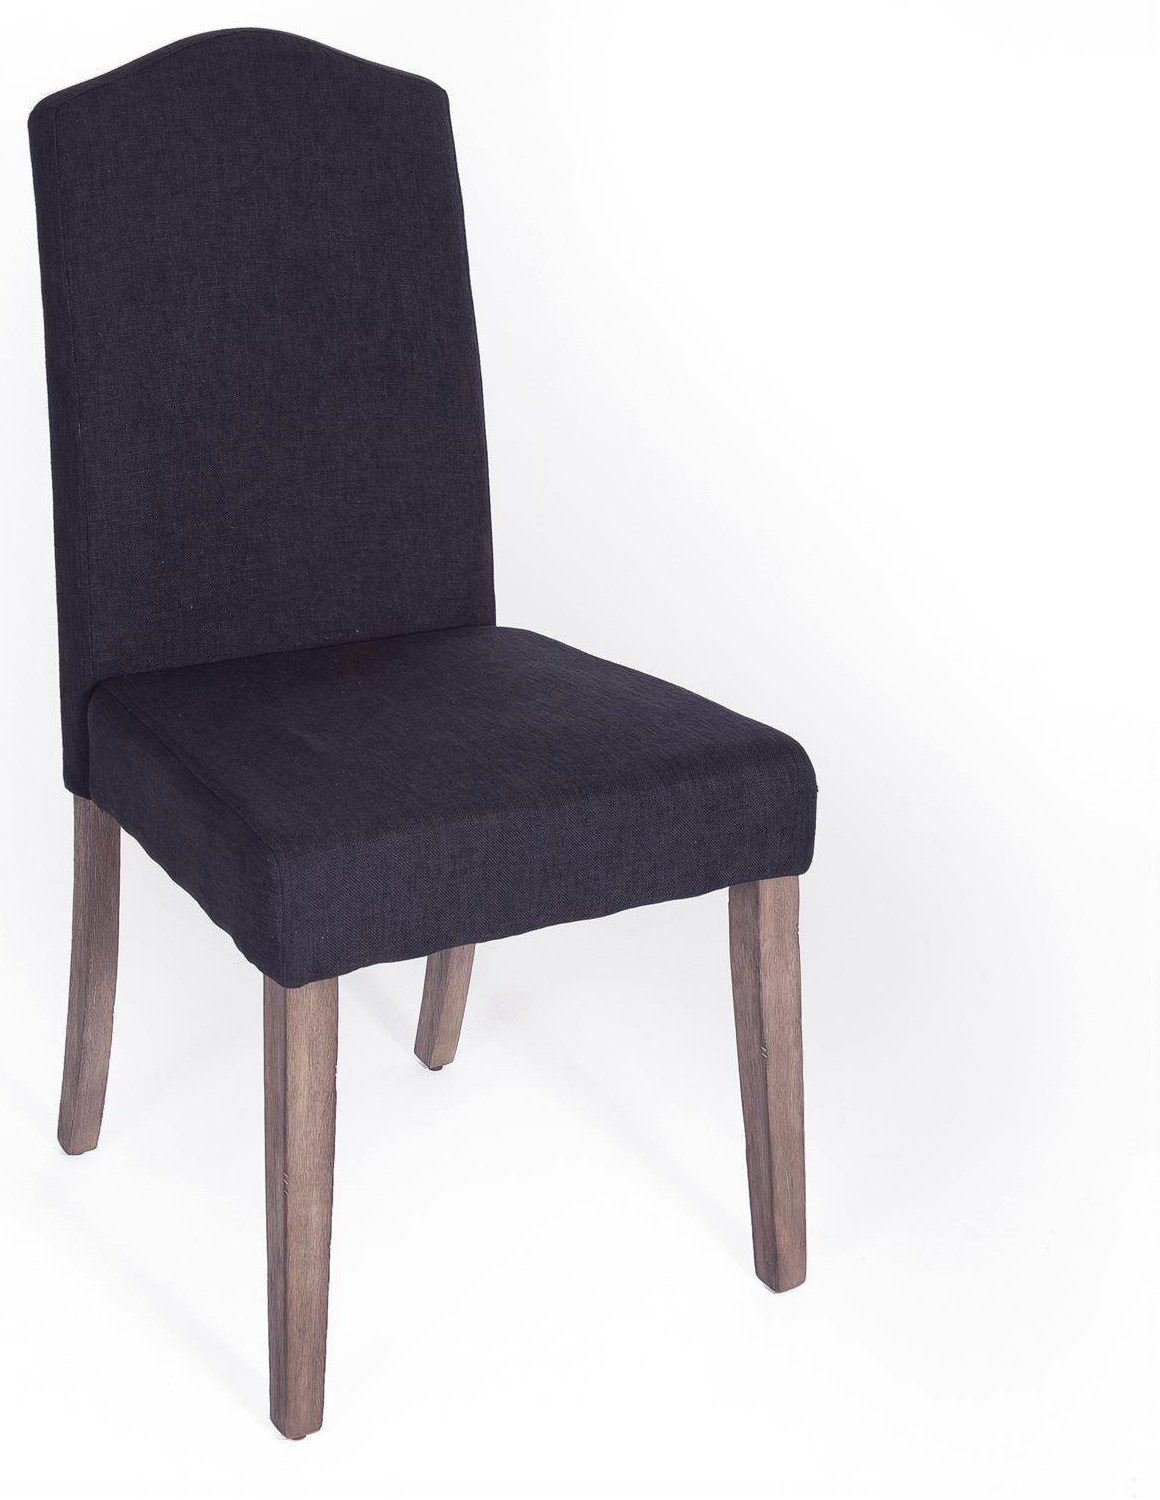 Carolina Lakes Upholstered Side Chair by Freedom Furniture at Ruby Gordon Home